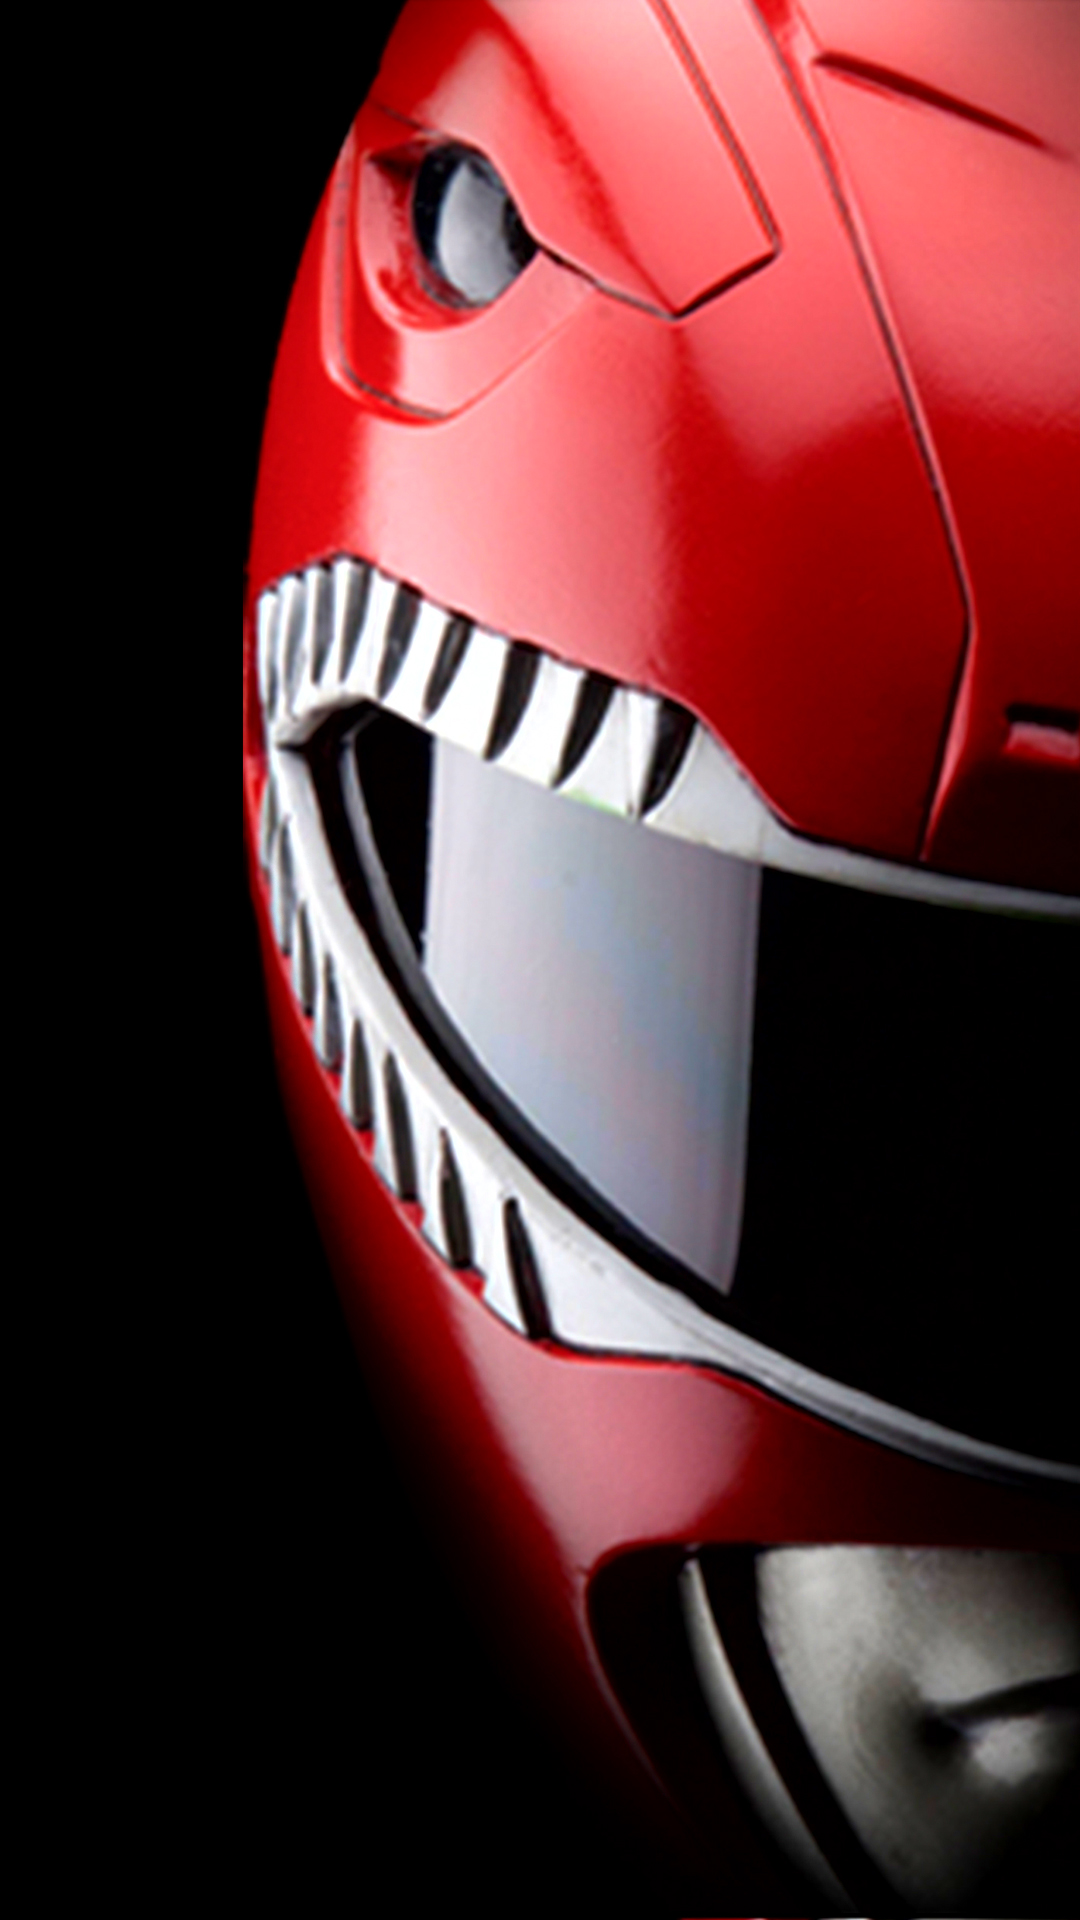 Power Rangers HD Wallpaper For Your HTC Smartphone